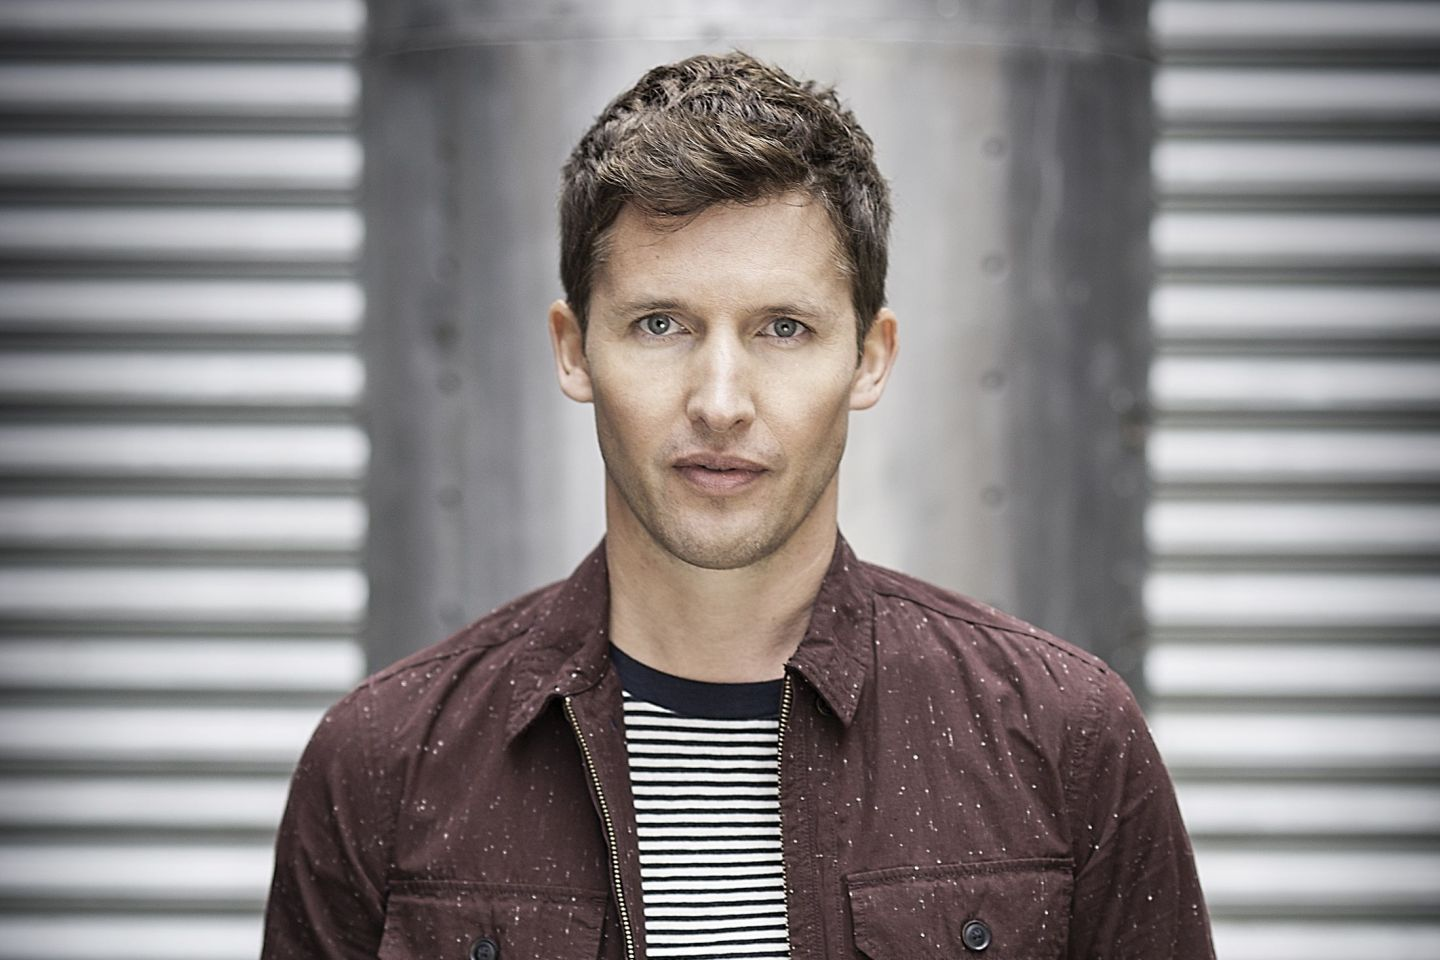 THEN & NOW: James Blunt